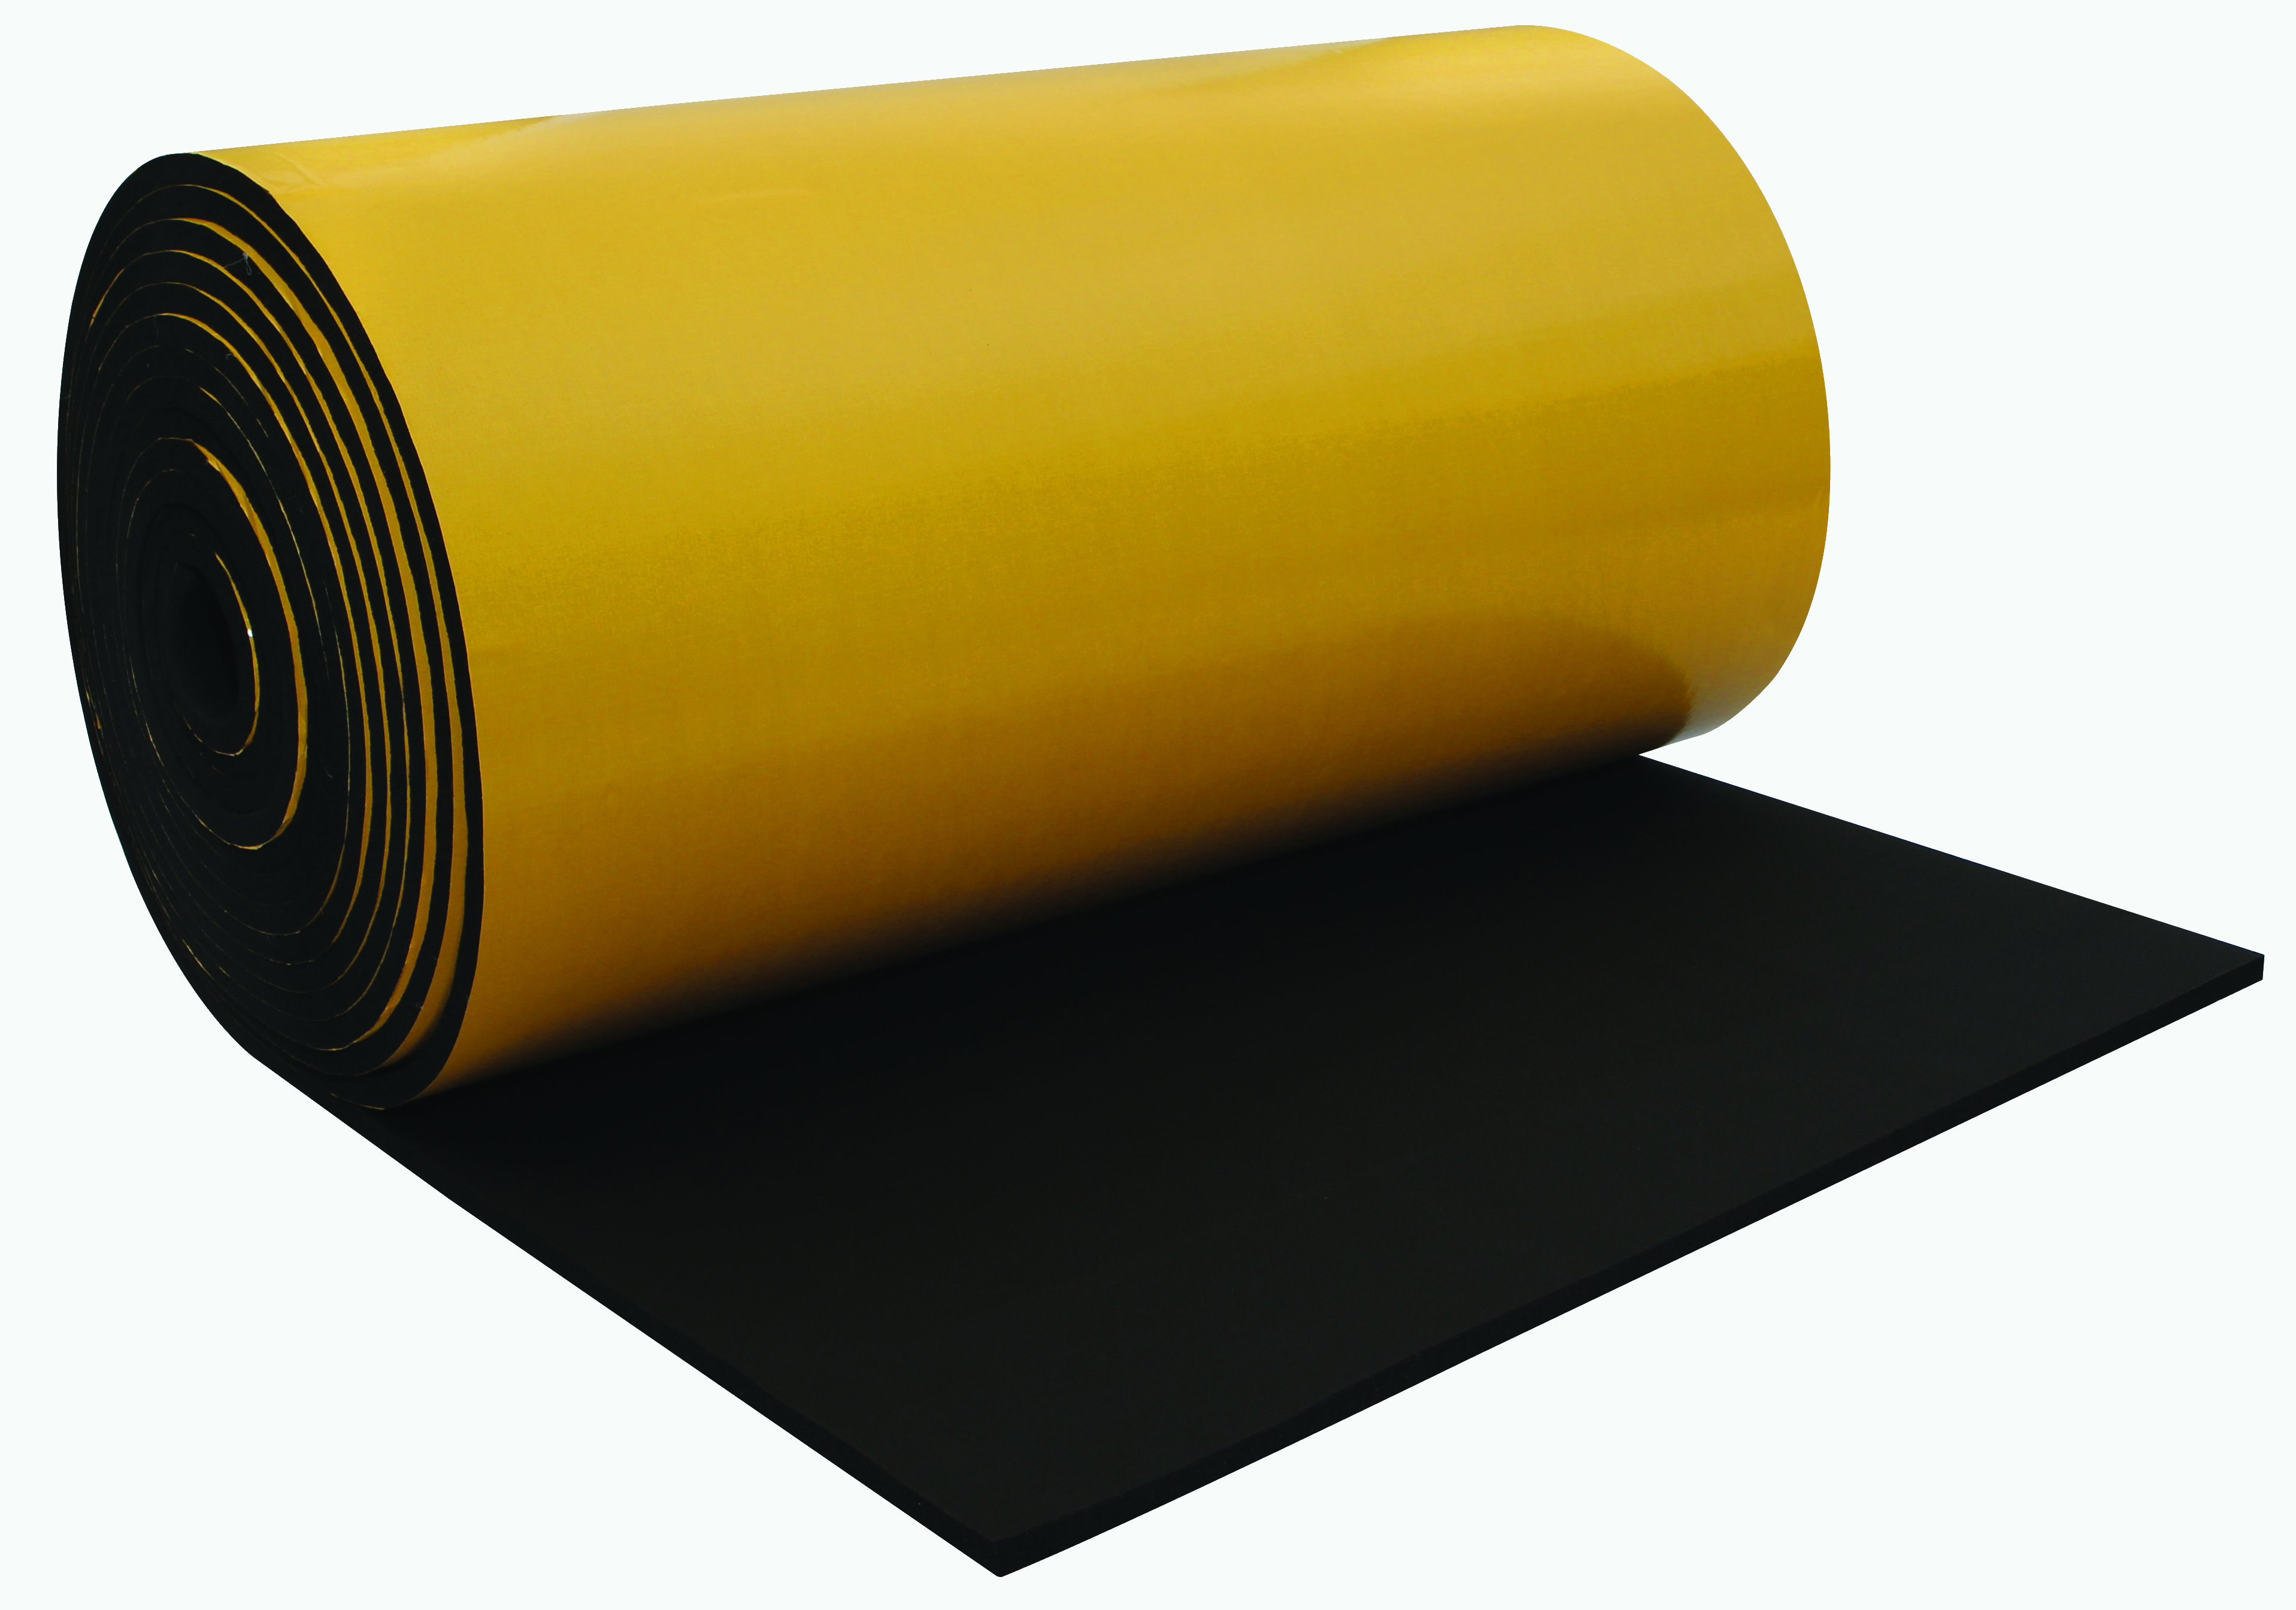 Self-adhesive elastomeric rubber foam insulation sheets